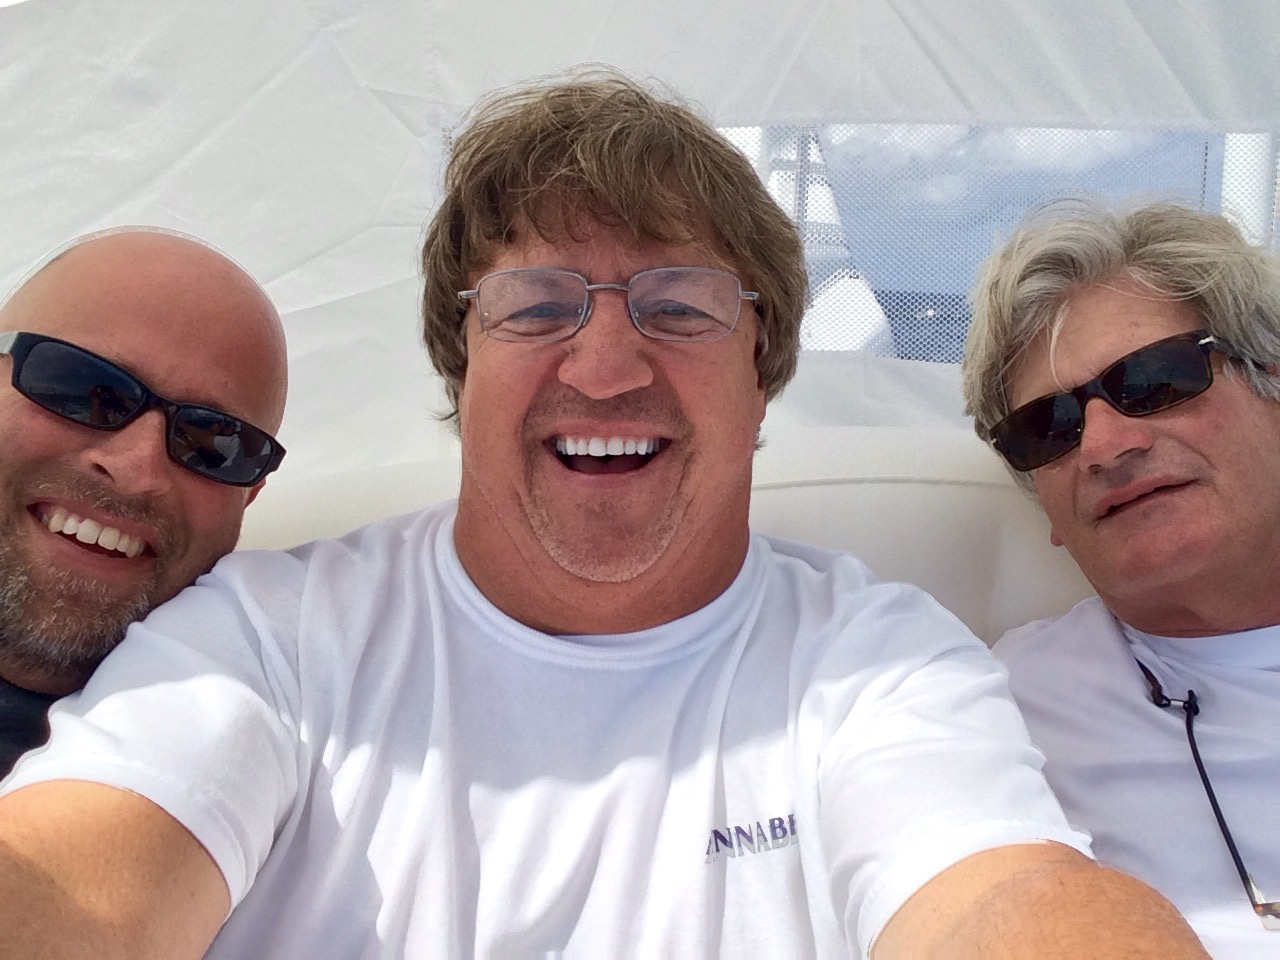 Bill Morong, David Lacz (taking the photo) and Maldwin Drummond while at sea during the delivery from Florida the afternoon before Mr. Lacz' death. PHOTO FROM MALDWIN DRUMMOND.